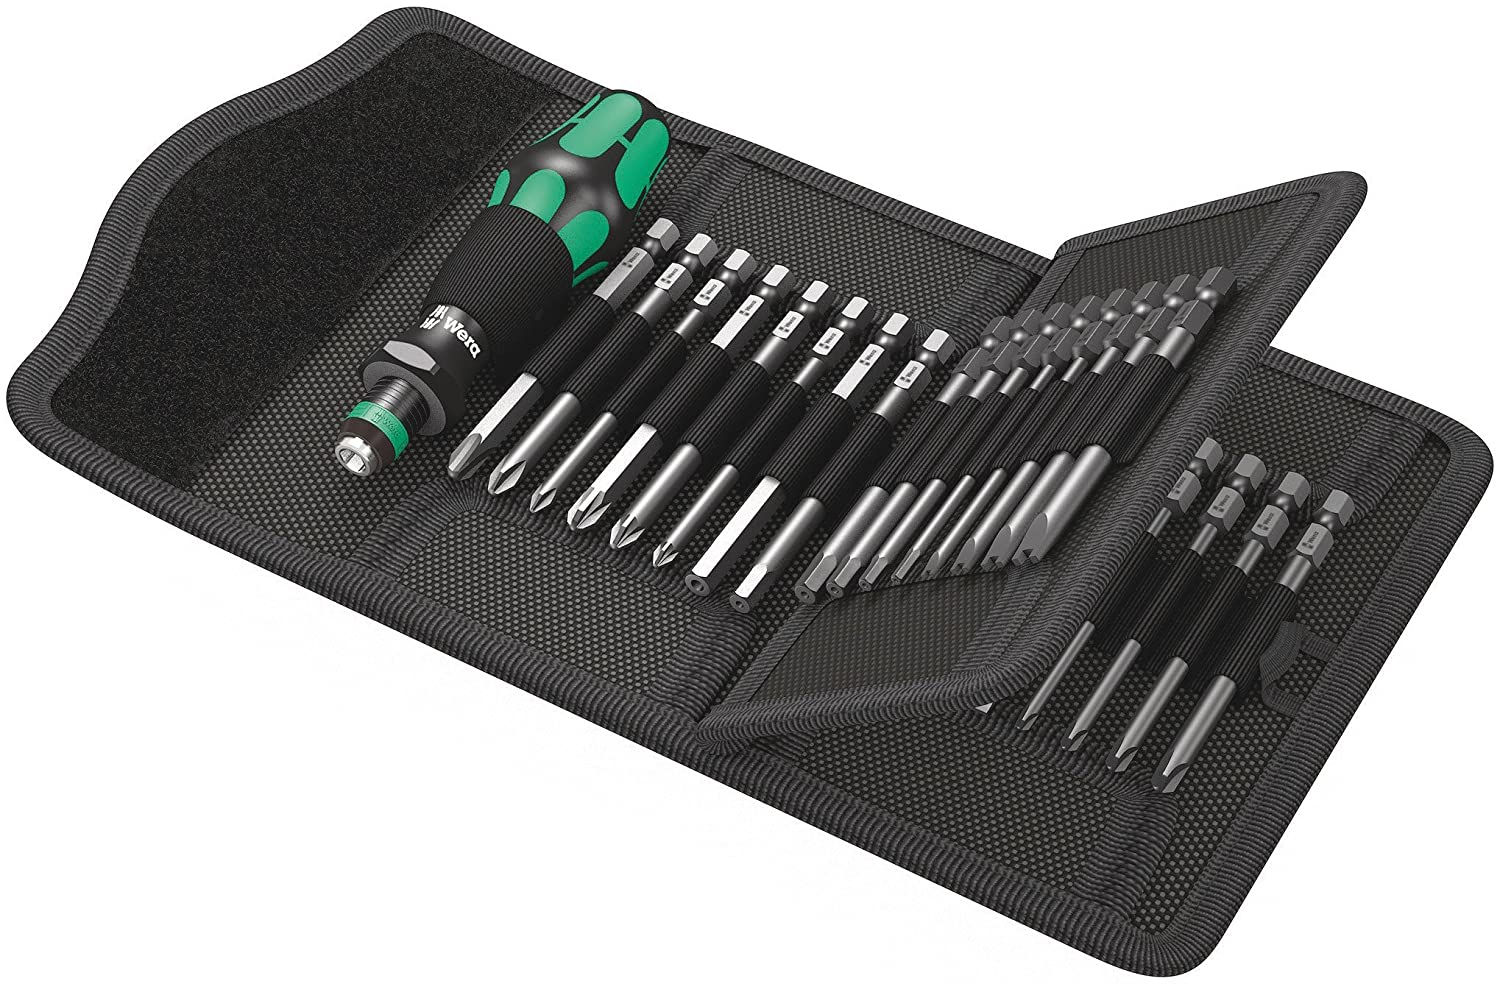 Wera Kraftform Kompakt 62 Bitholding Screwdriver and Pouch Set, 33-Pieces Wera Tools 05059297001